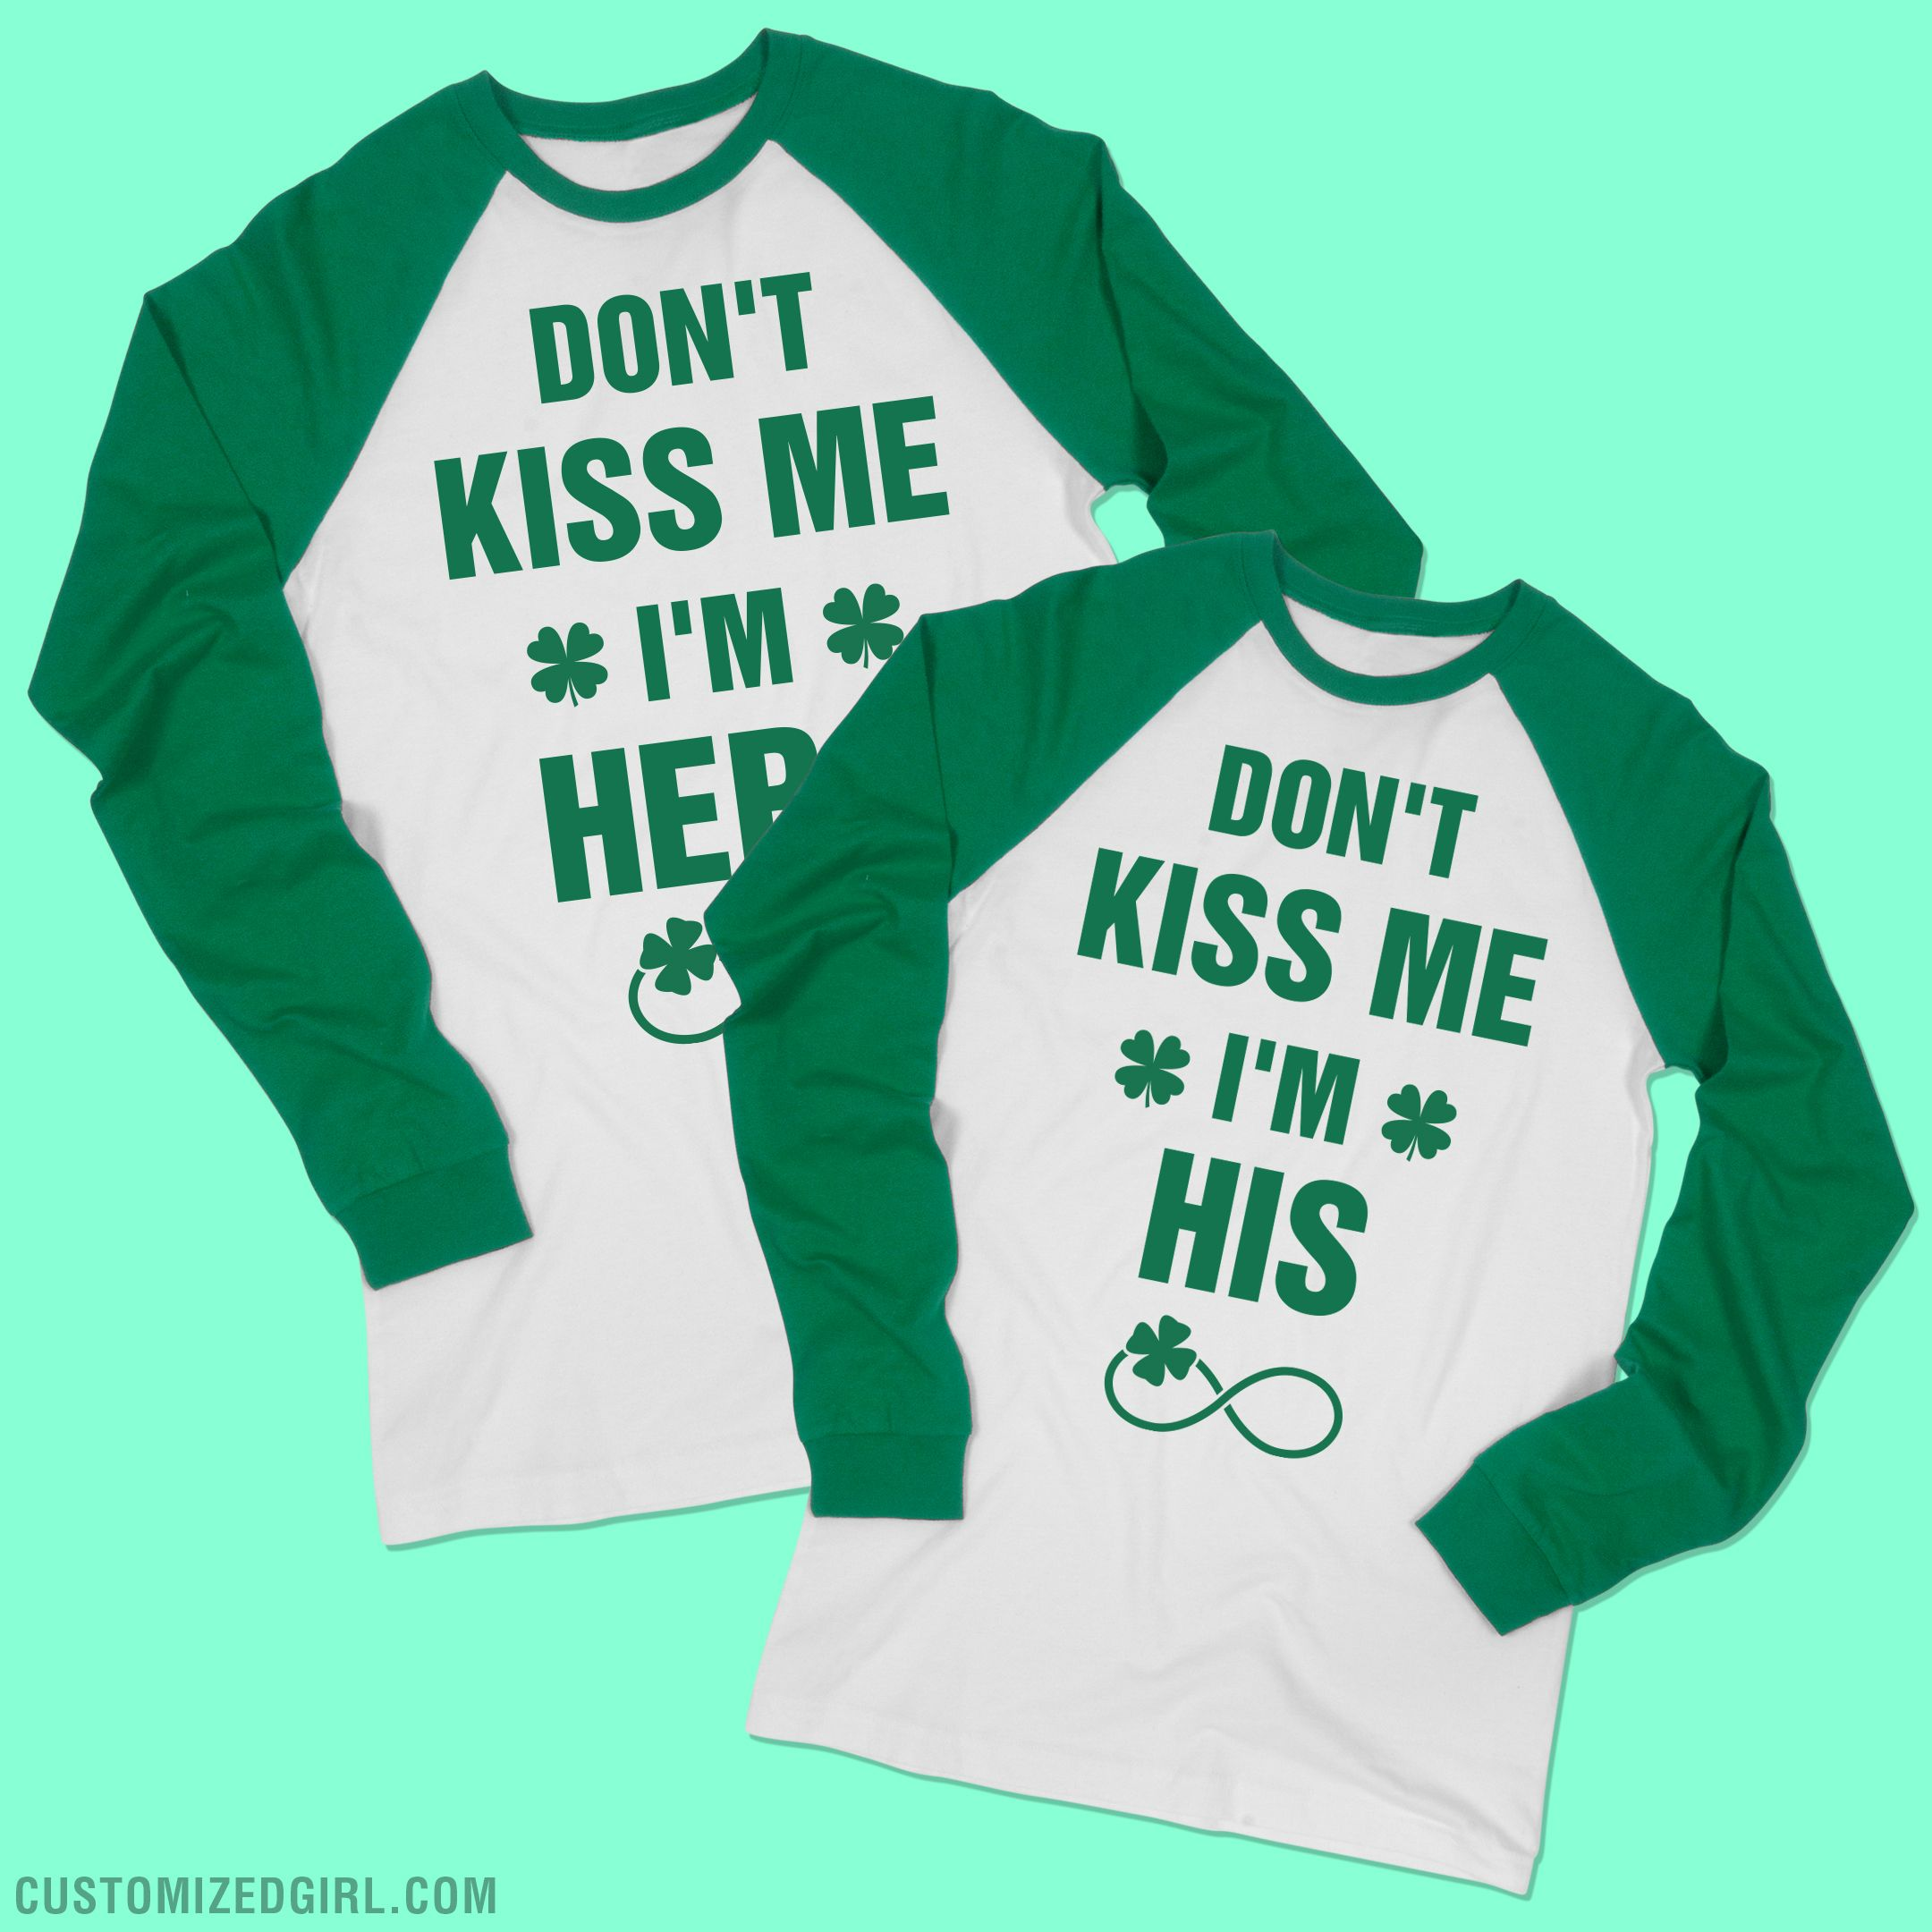 65c9ead4f Don't kiss me, I'm hers! Show off your love for your Irish lassie with this  cool matching couple shirt. You'll drink green beer on ST. Patrick's Day  but the ...